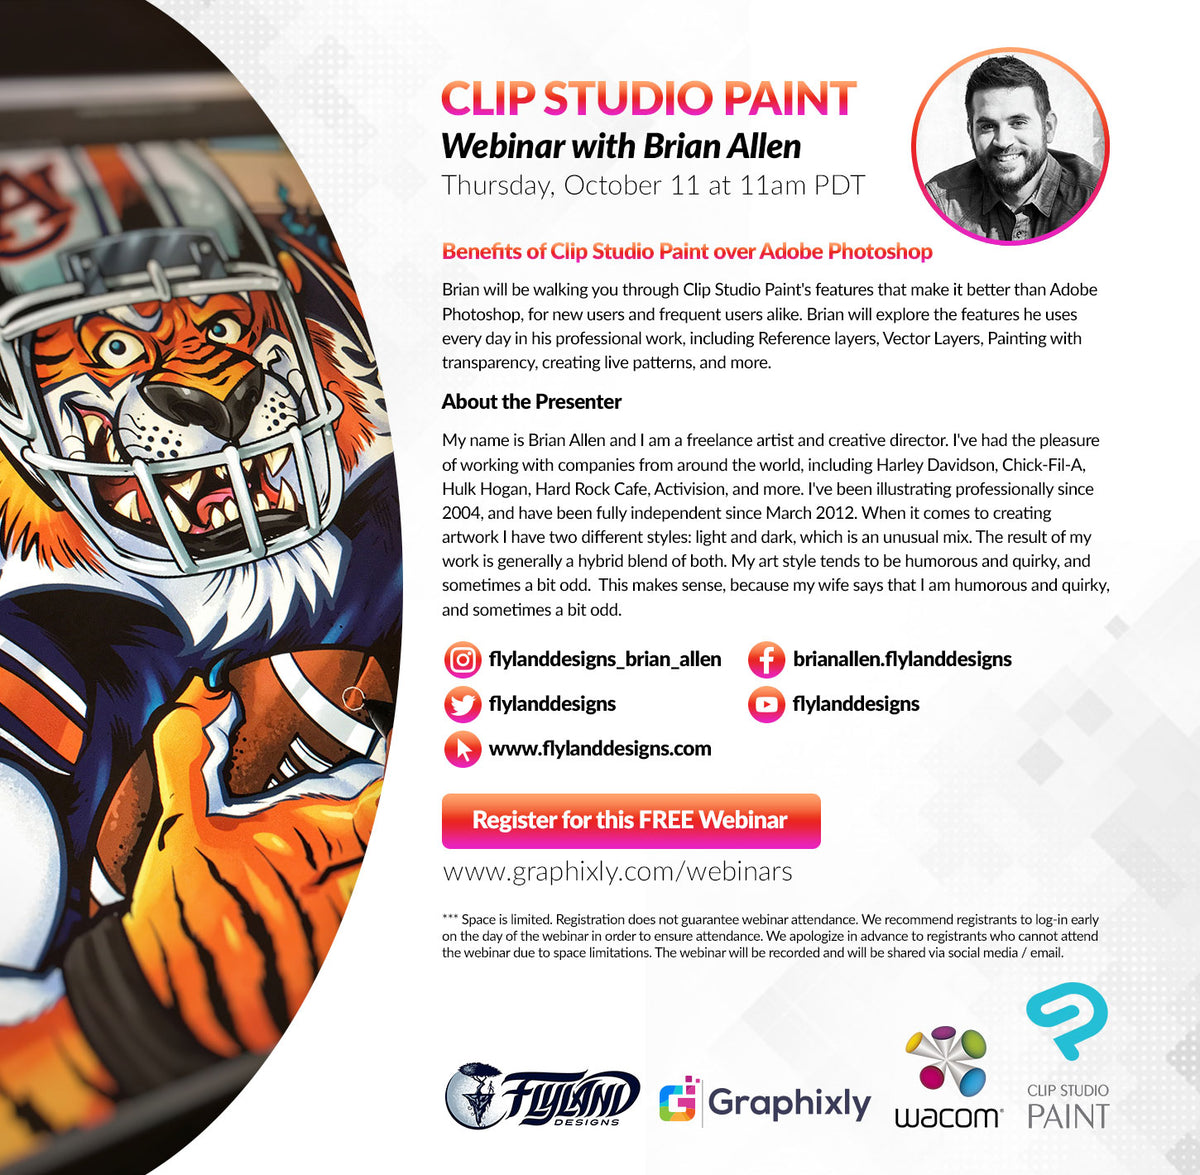 Webinar - Benefits of CLIP STUDIO PAINT over Adobe Photoshop with Bria